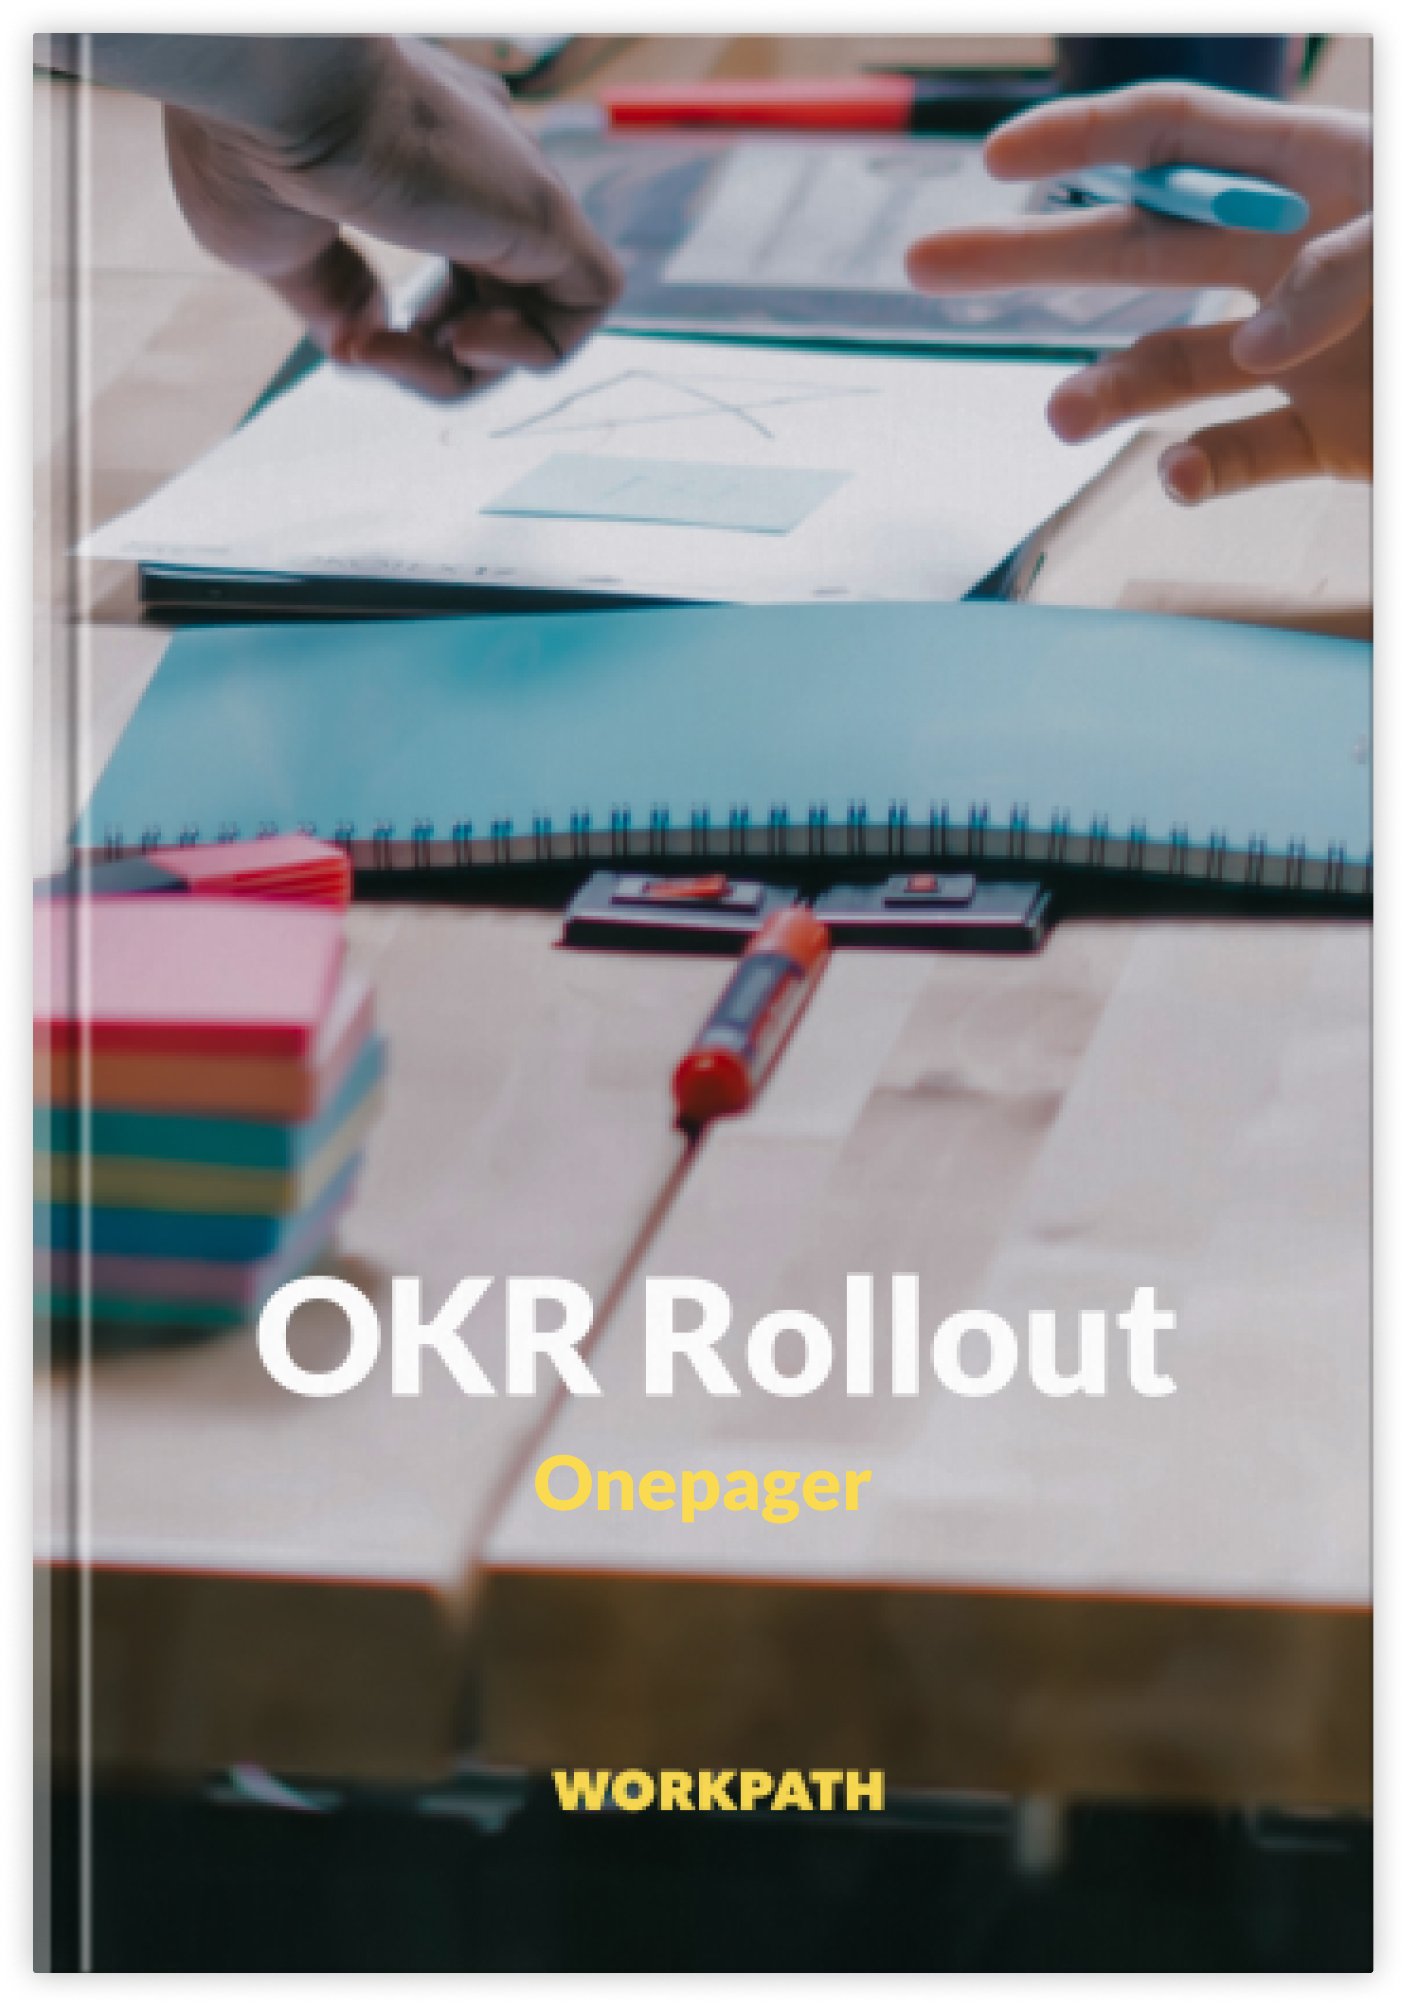 OKR Rollout Onepager